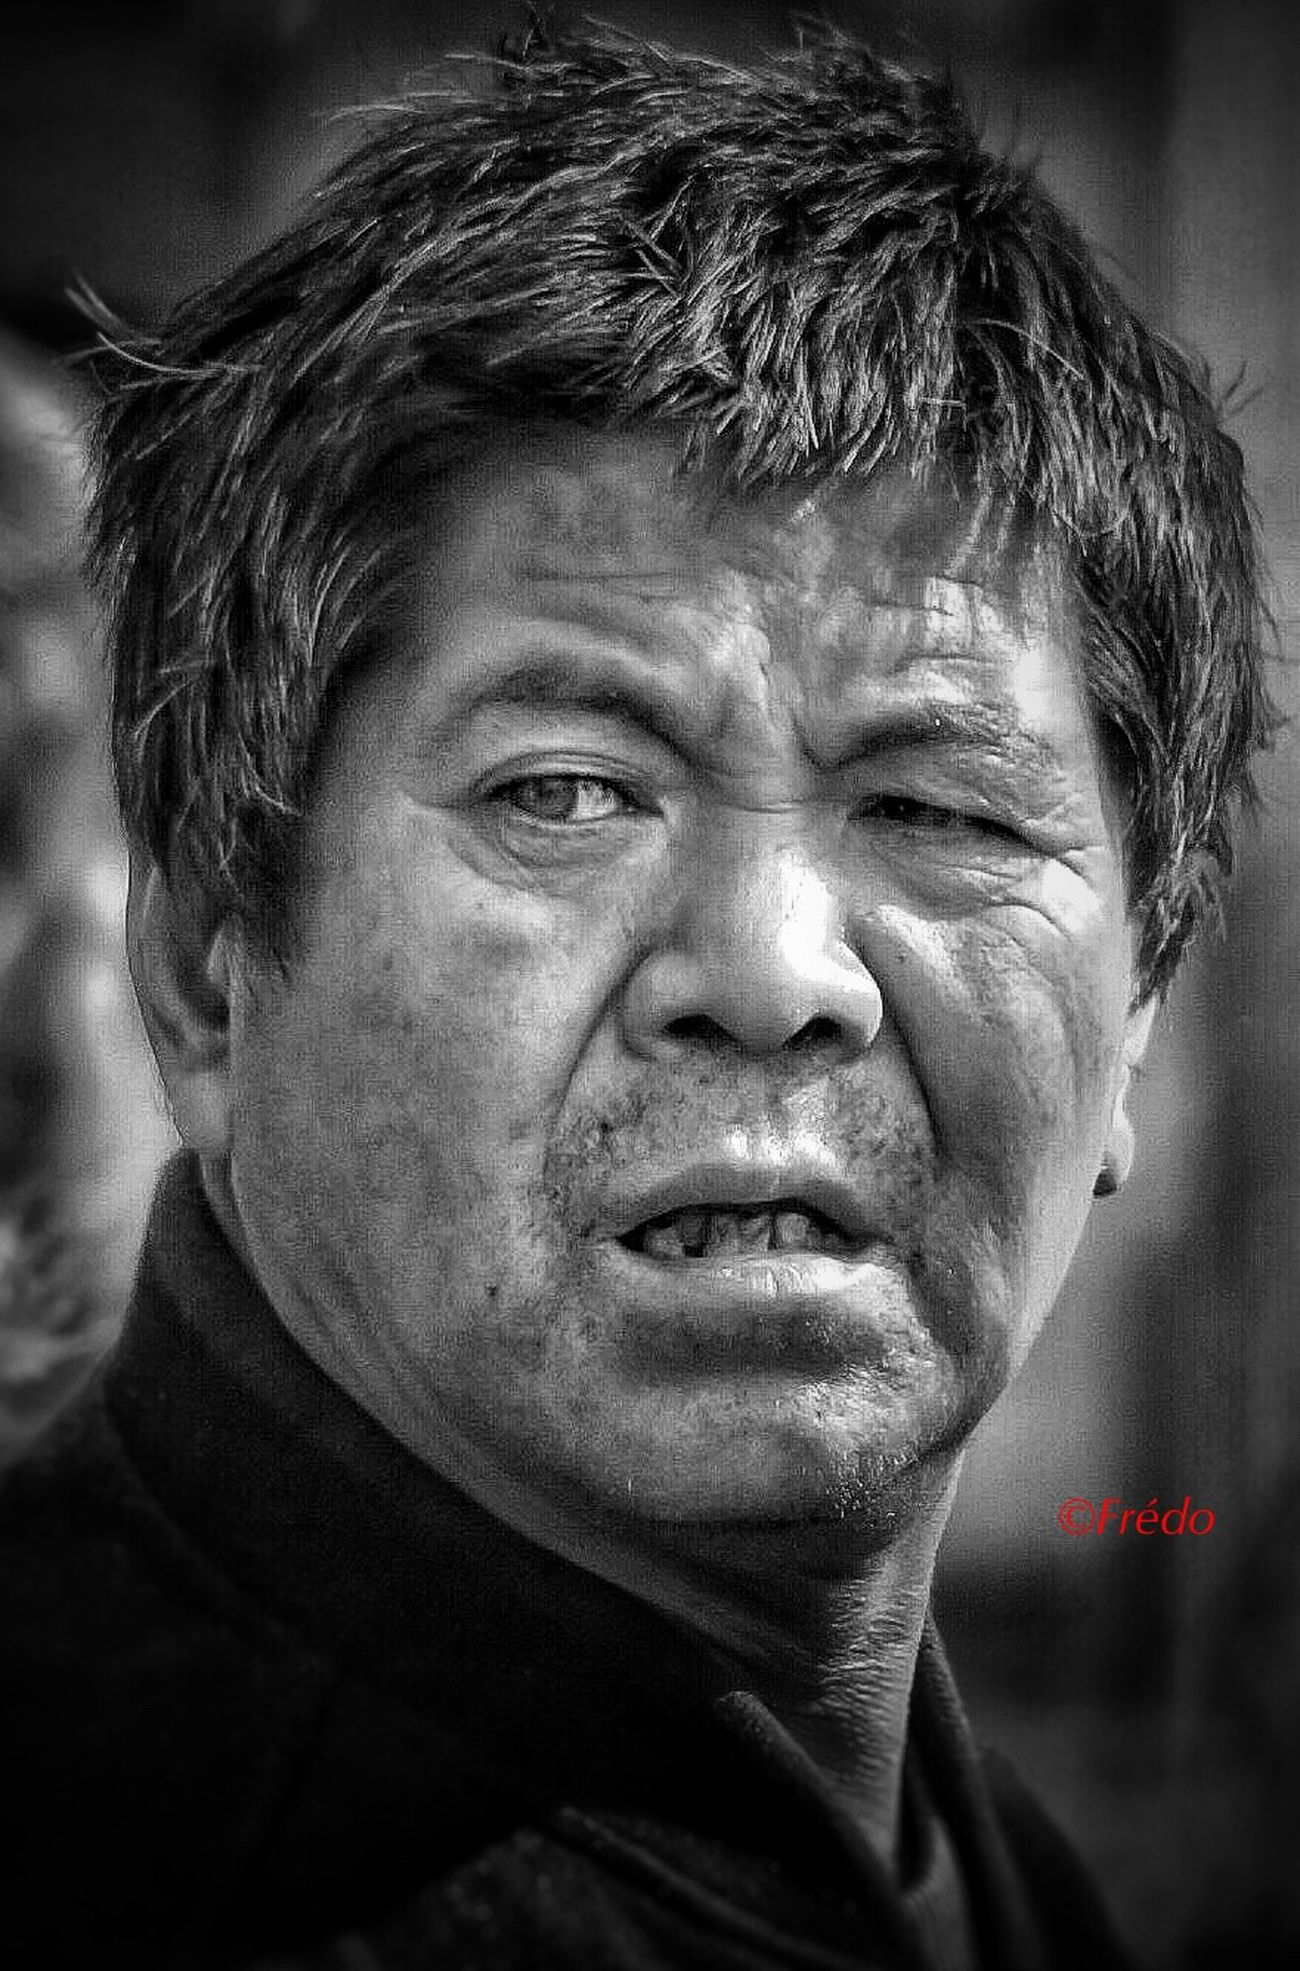 Gros plan 4772333 Close-up Portrait Photography Beijing, China Street Life Street Photos😄📷🏫⛪🚒🚐🚲⚠ Black And White Photography BEIJING北京CHINA中国BEAUTY EyeminInChina Eyeemphotography Streetphoto Photooftheday Streetphotography EyeEm Best Shots Street Photography Street Photo Eyem Gallery China In My Eyes Black & White